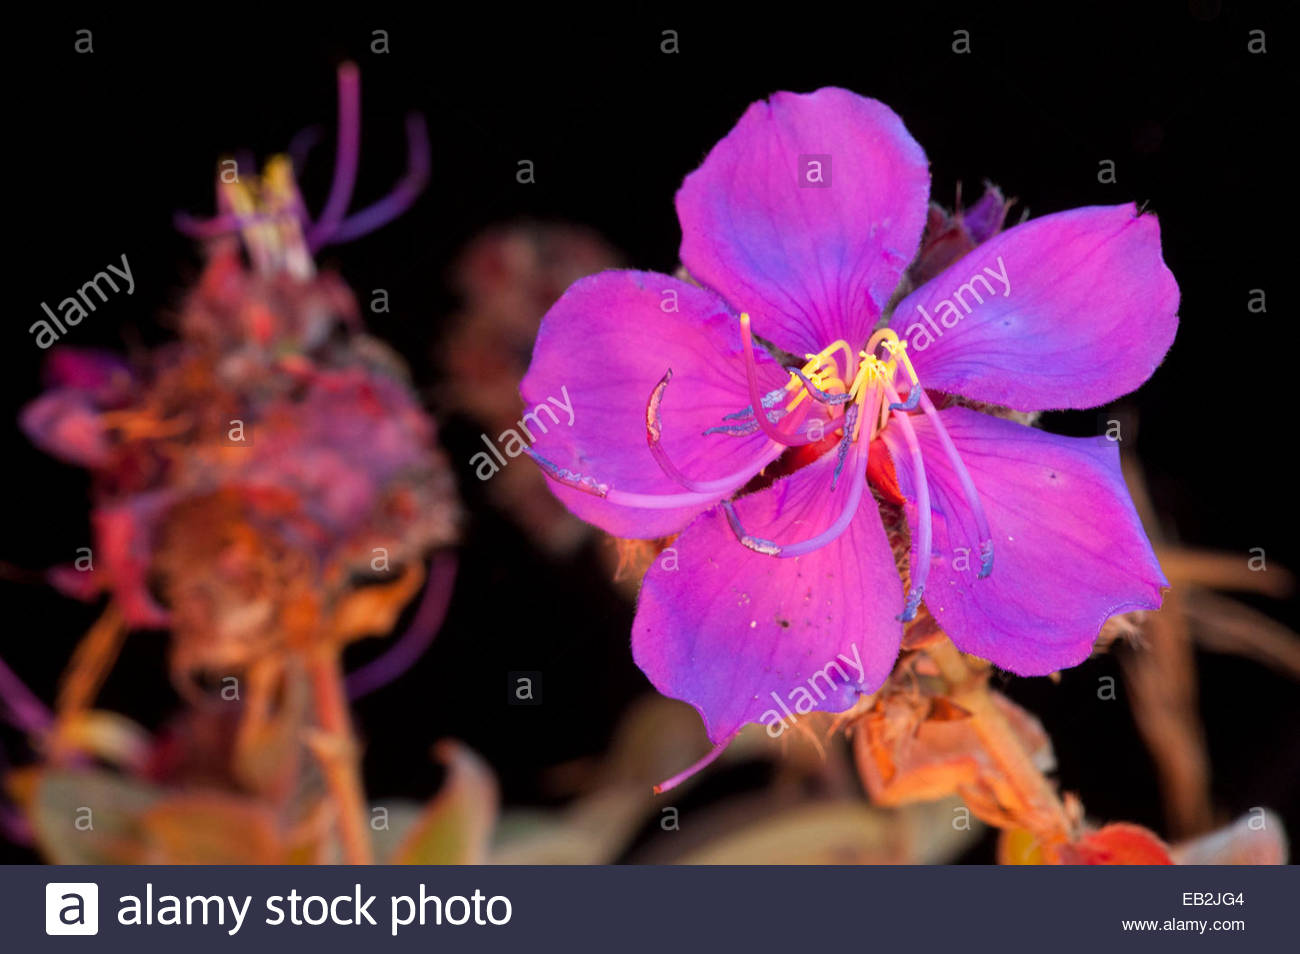 A flower from the genus Dissotis collected from Mount Gorongosa. - Stock Image